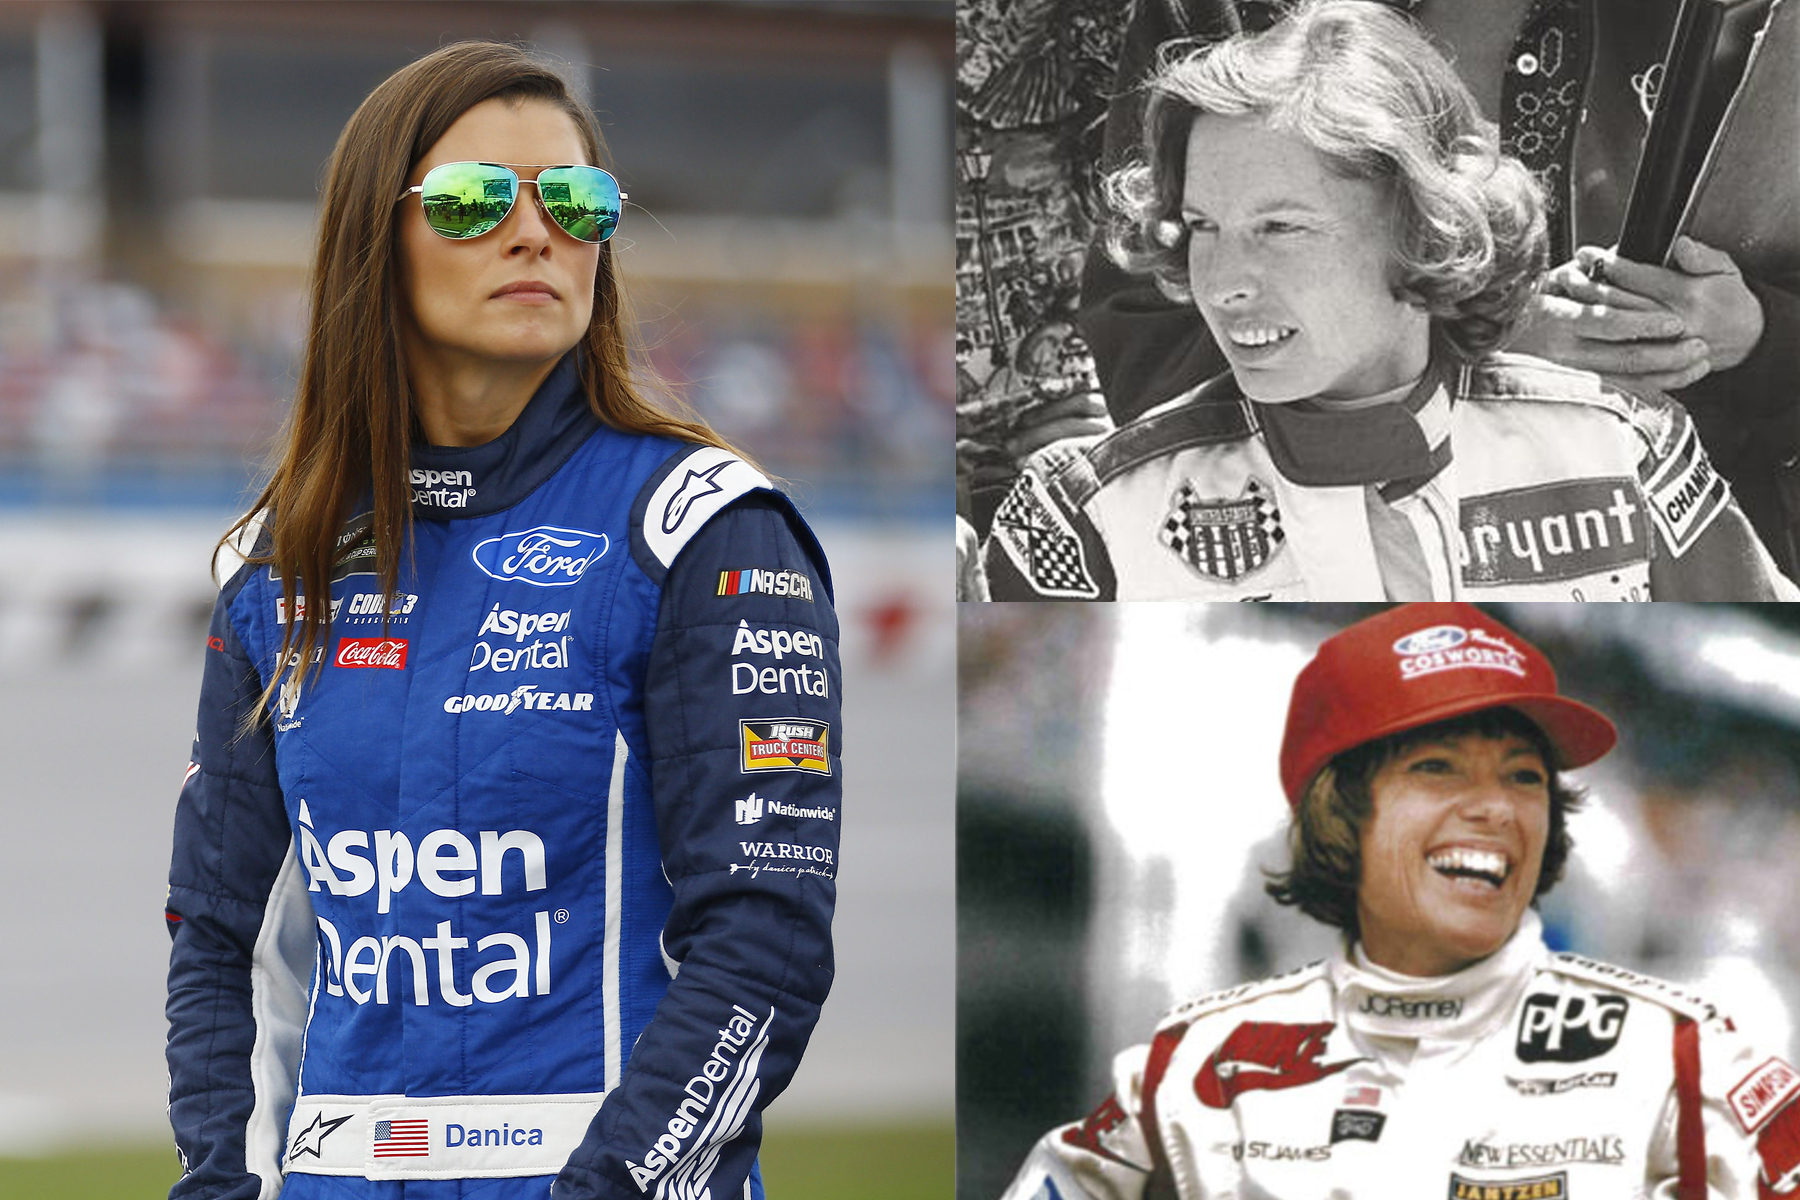 Danica Patrick, Janet Guthrie and Lyn St. James are just three of the women to make their mark on the Indy 500